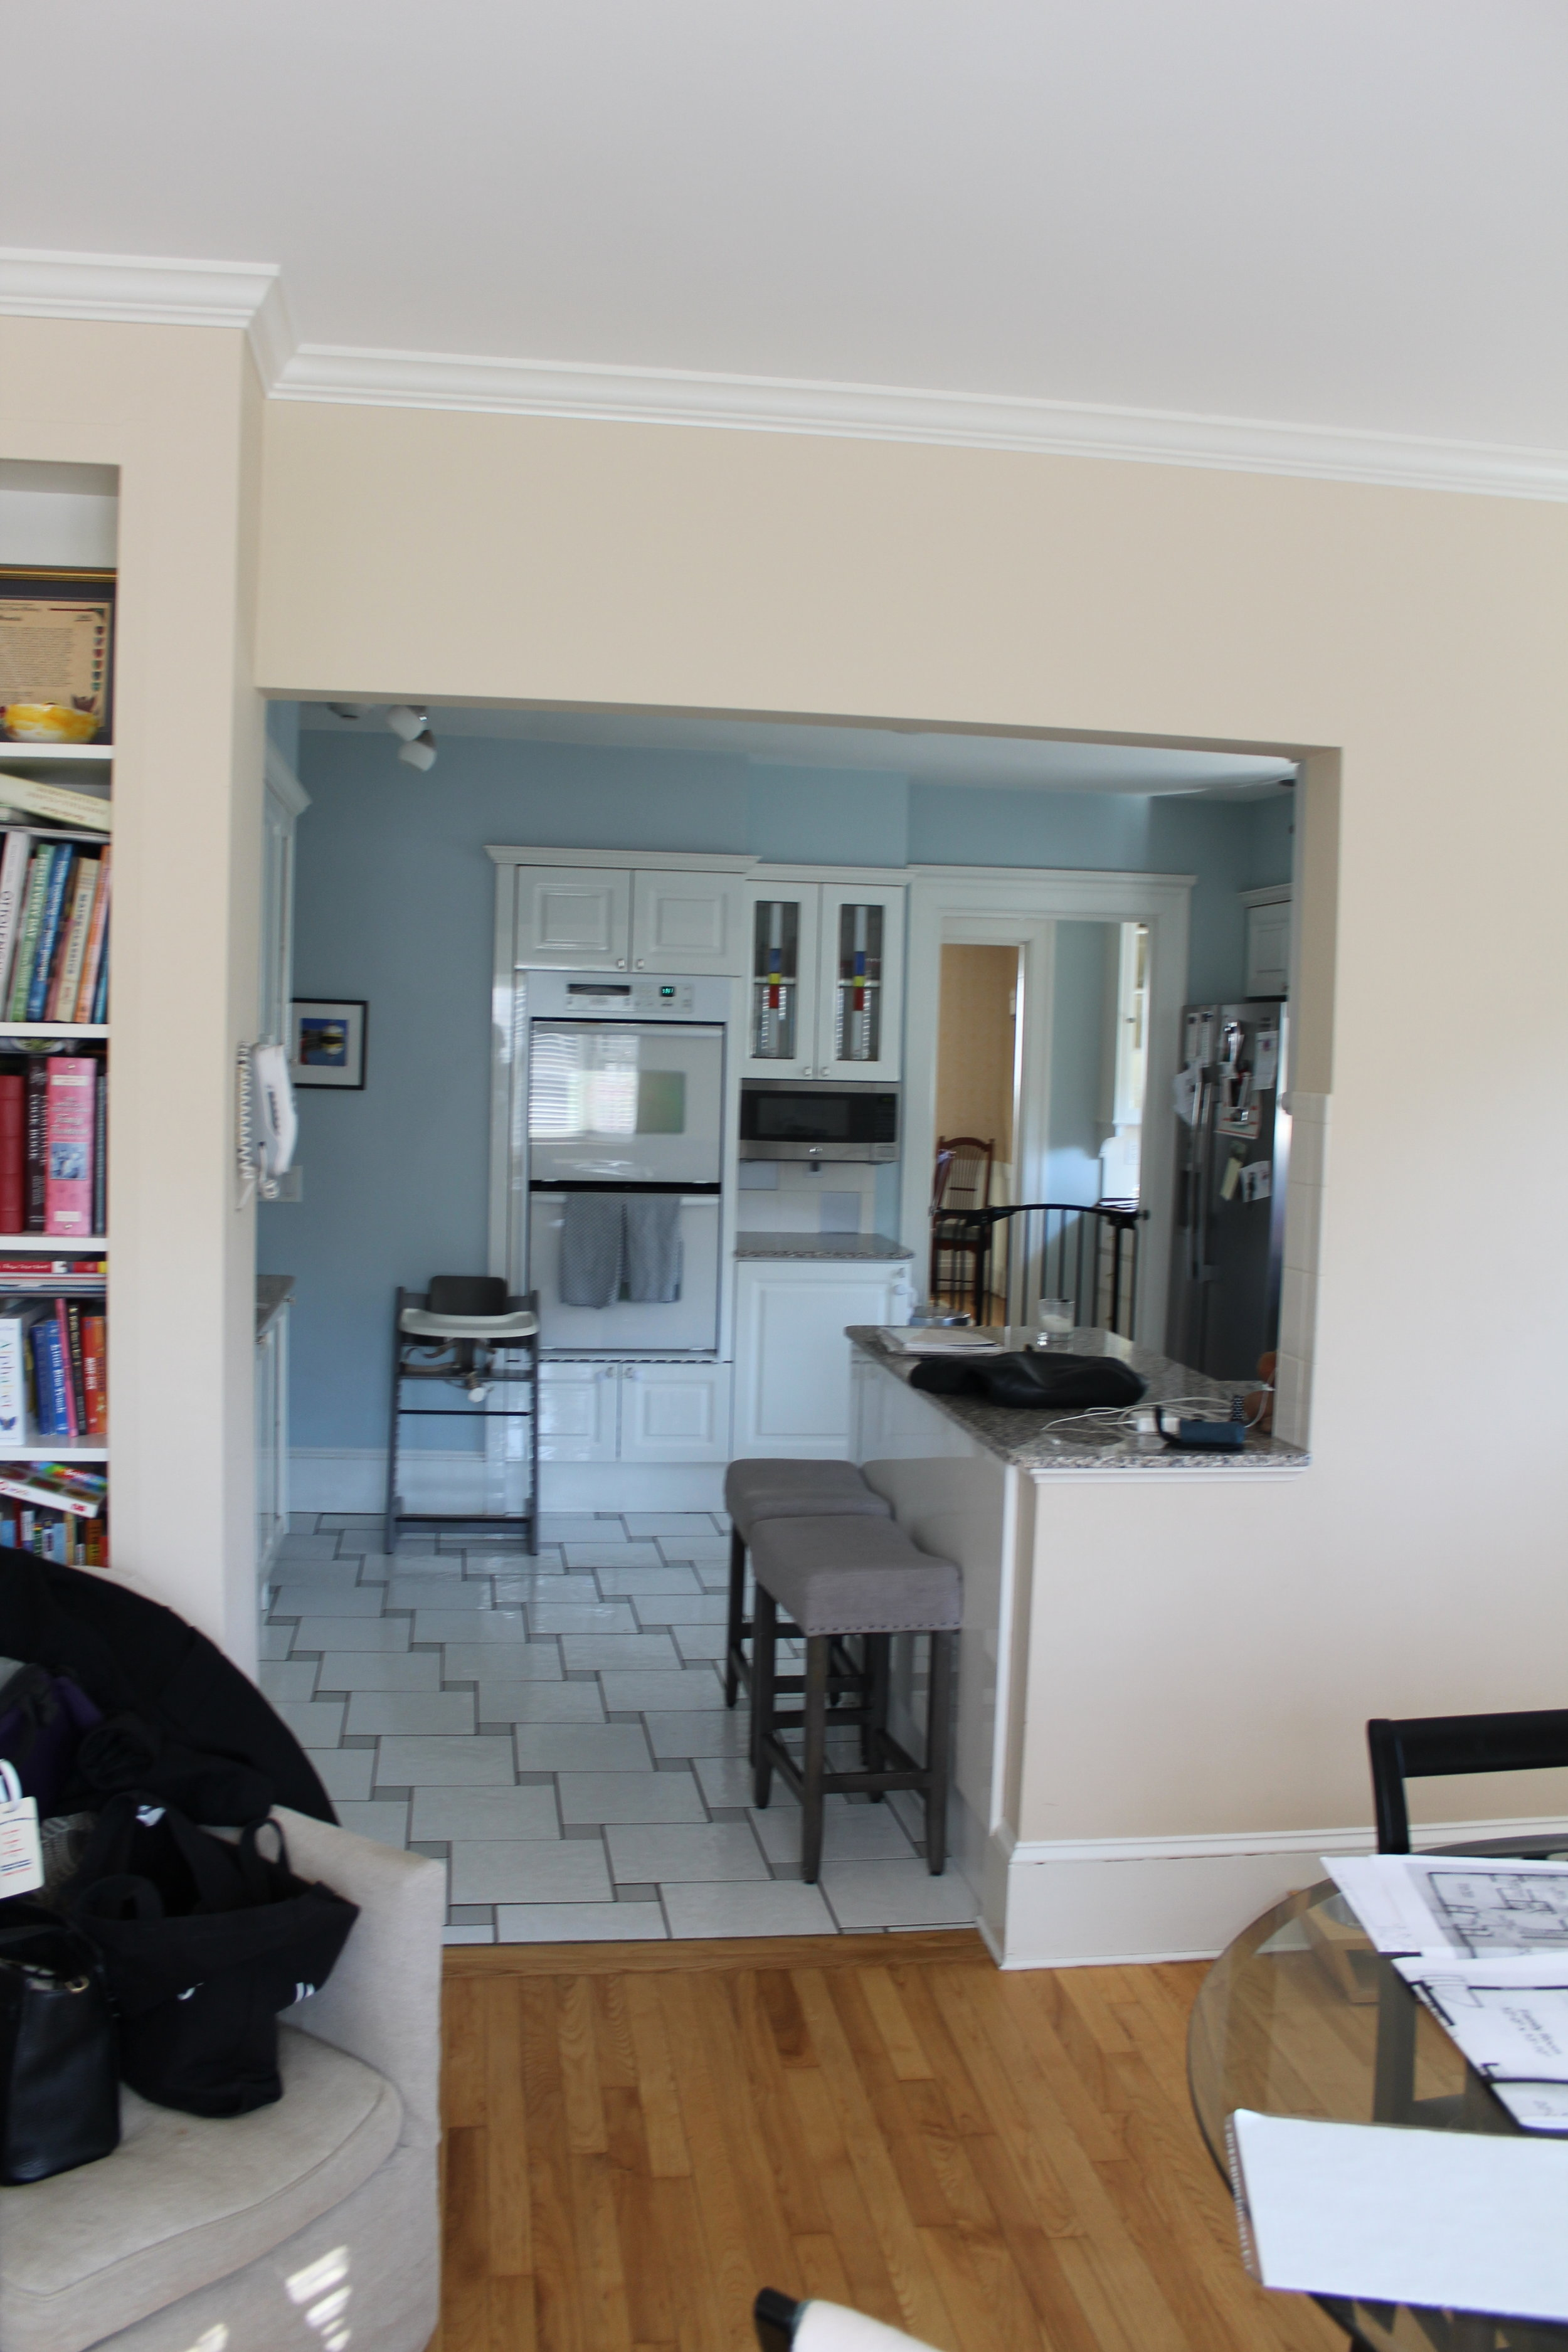 A closed-off kitchen adjacent to a room off the back of the house was dark, cluttered and claustrophobic.